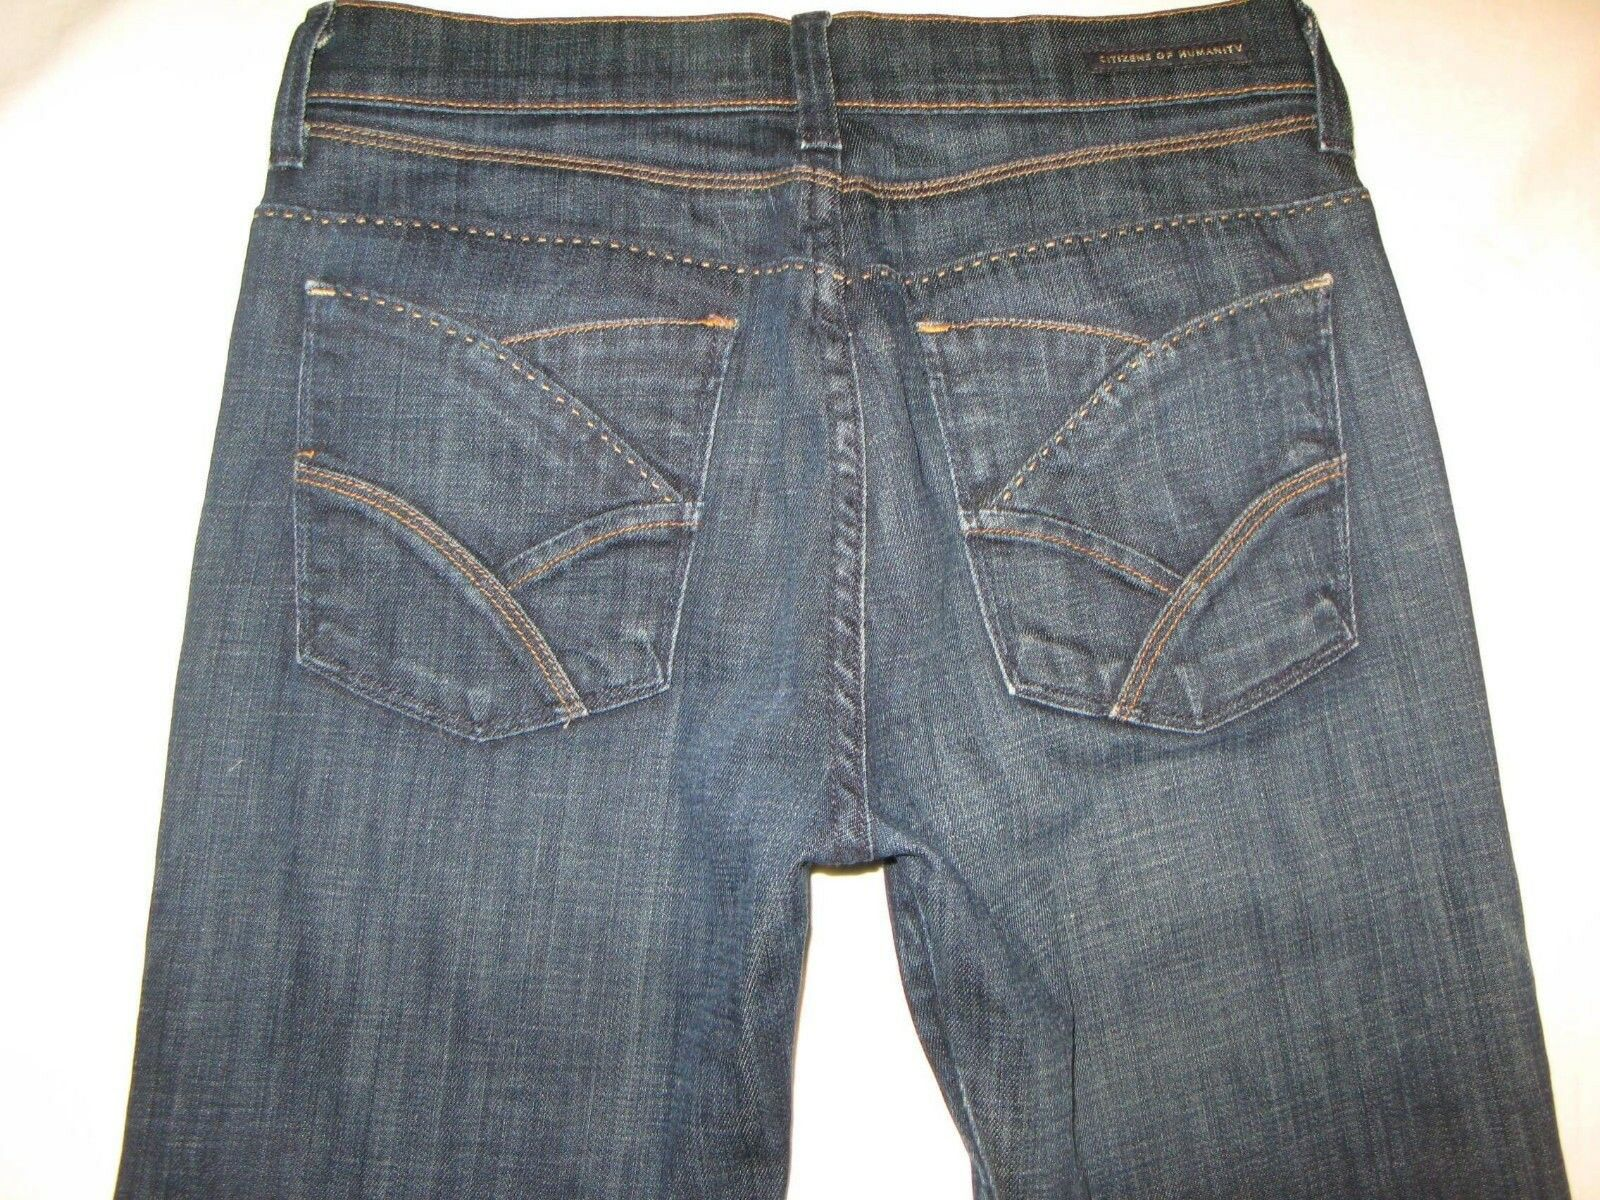 Citizens of Humanity Hutton Jeans Sz 26 High Rise Wide Leg Stretch Dark Wash